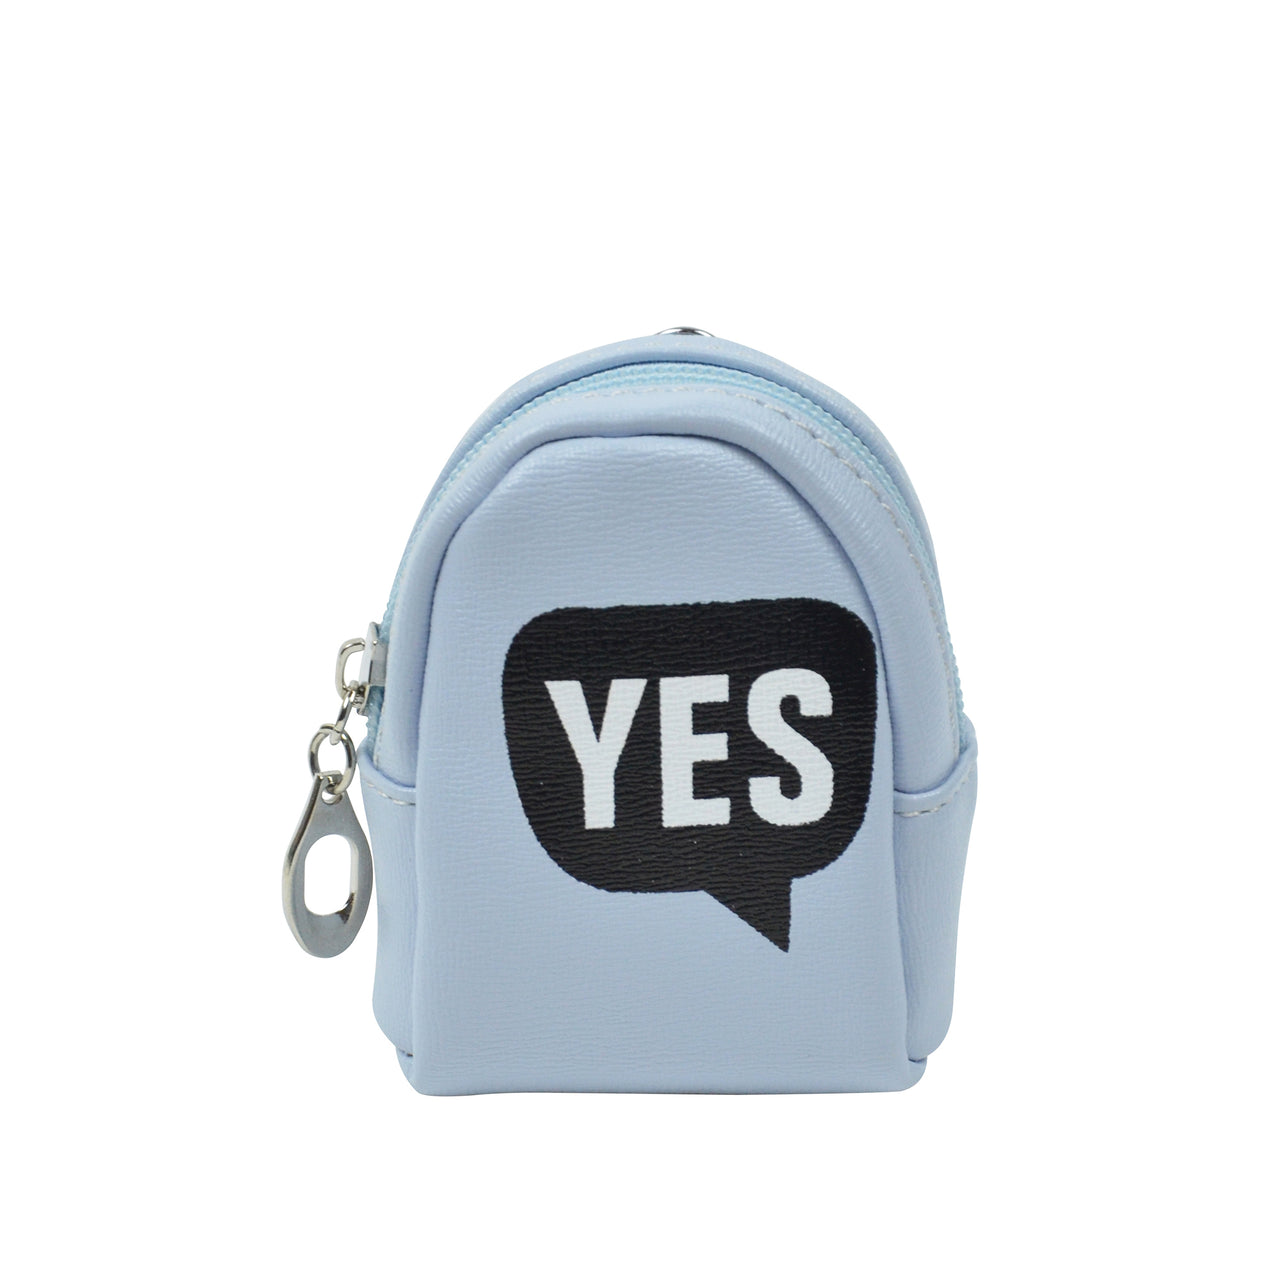 Yes Coin Purse - Light Blue